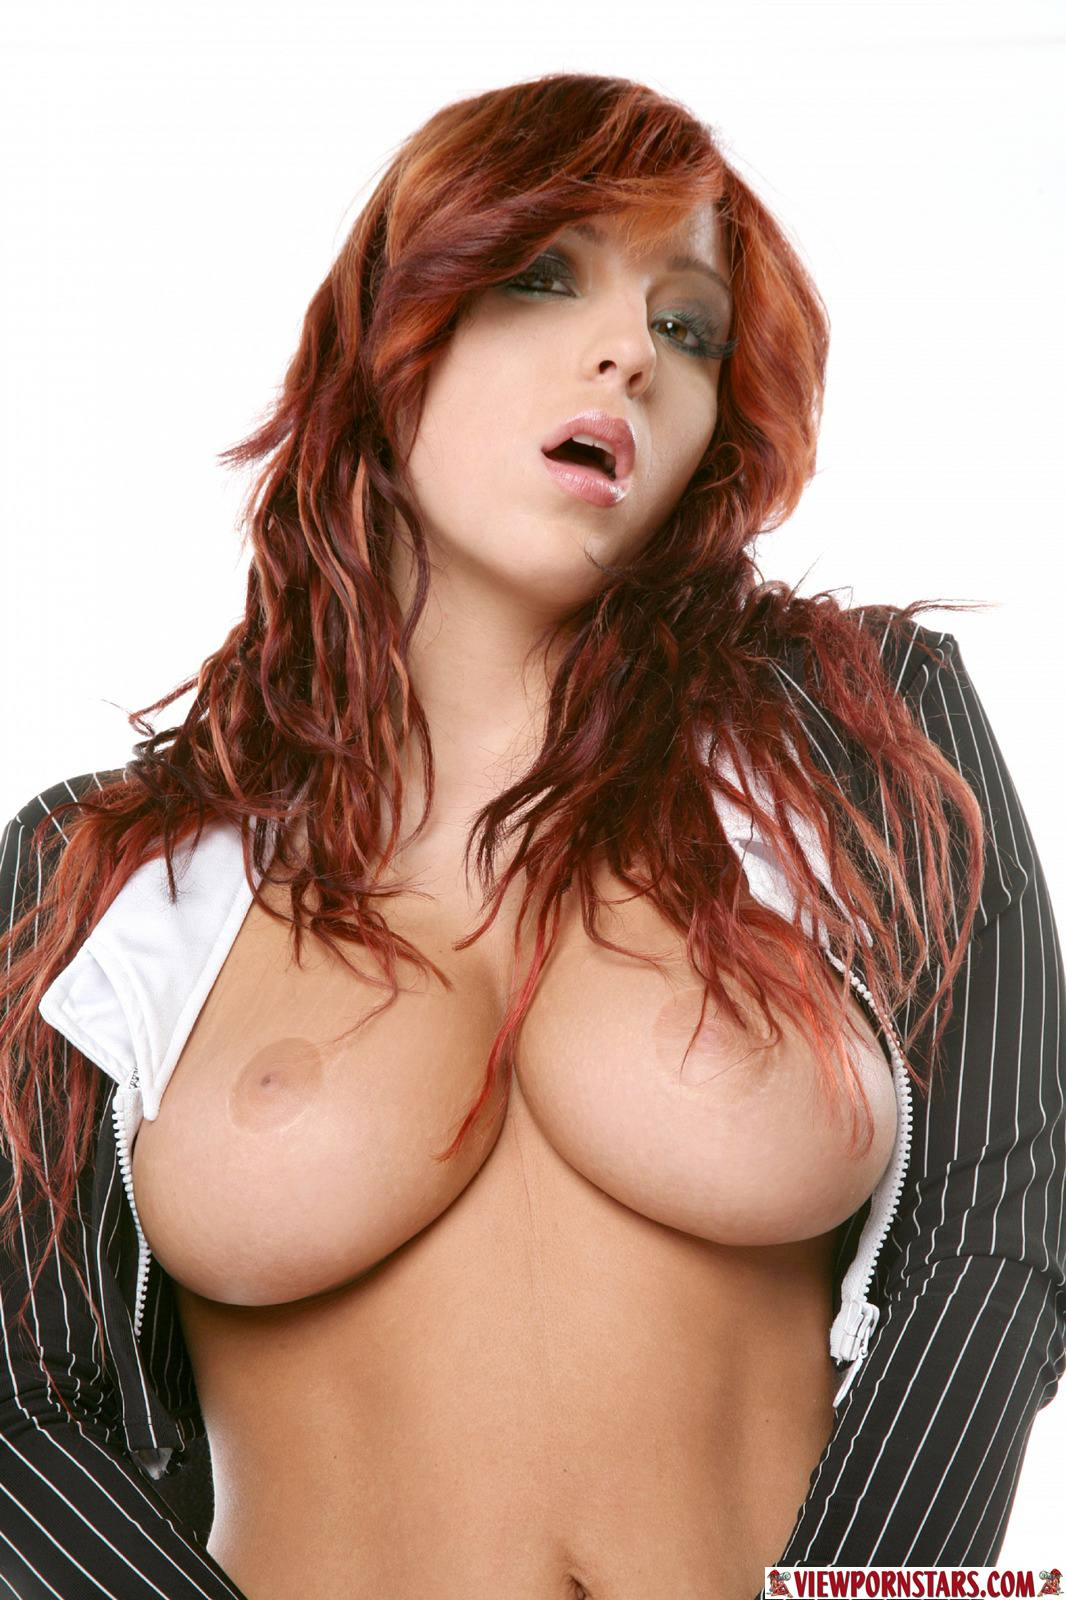 Natural big tits porn star wow